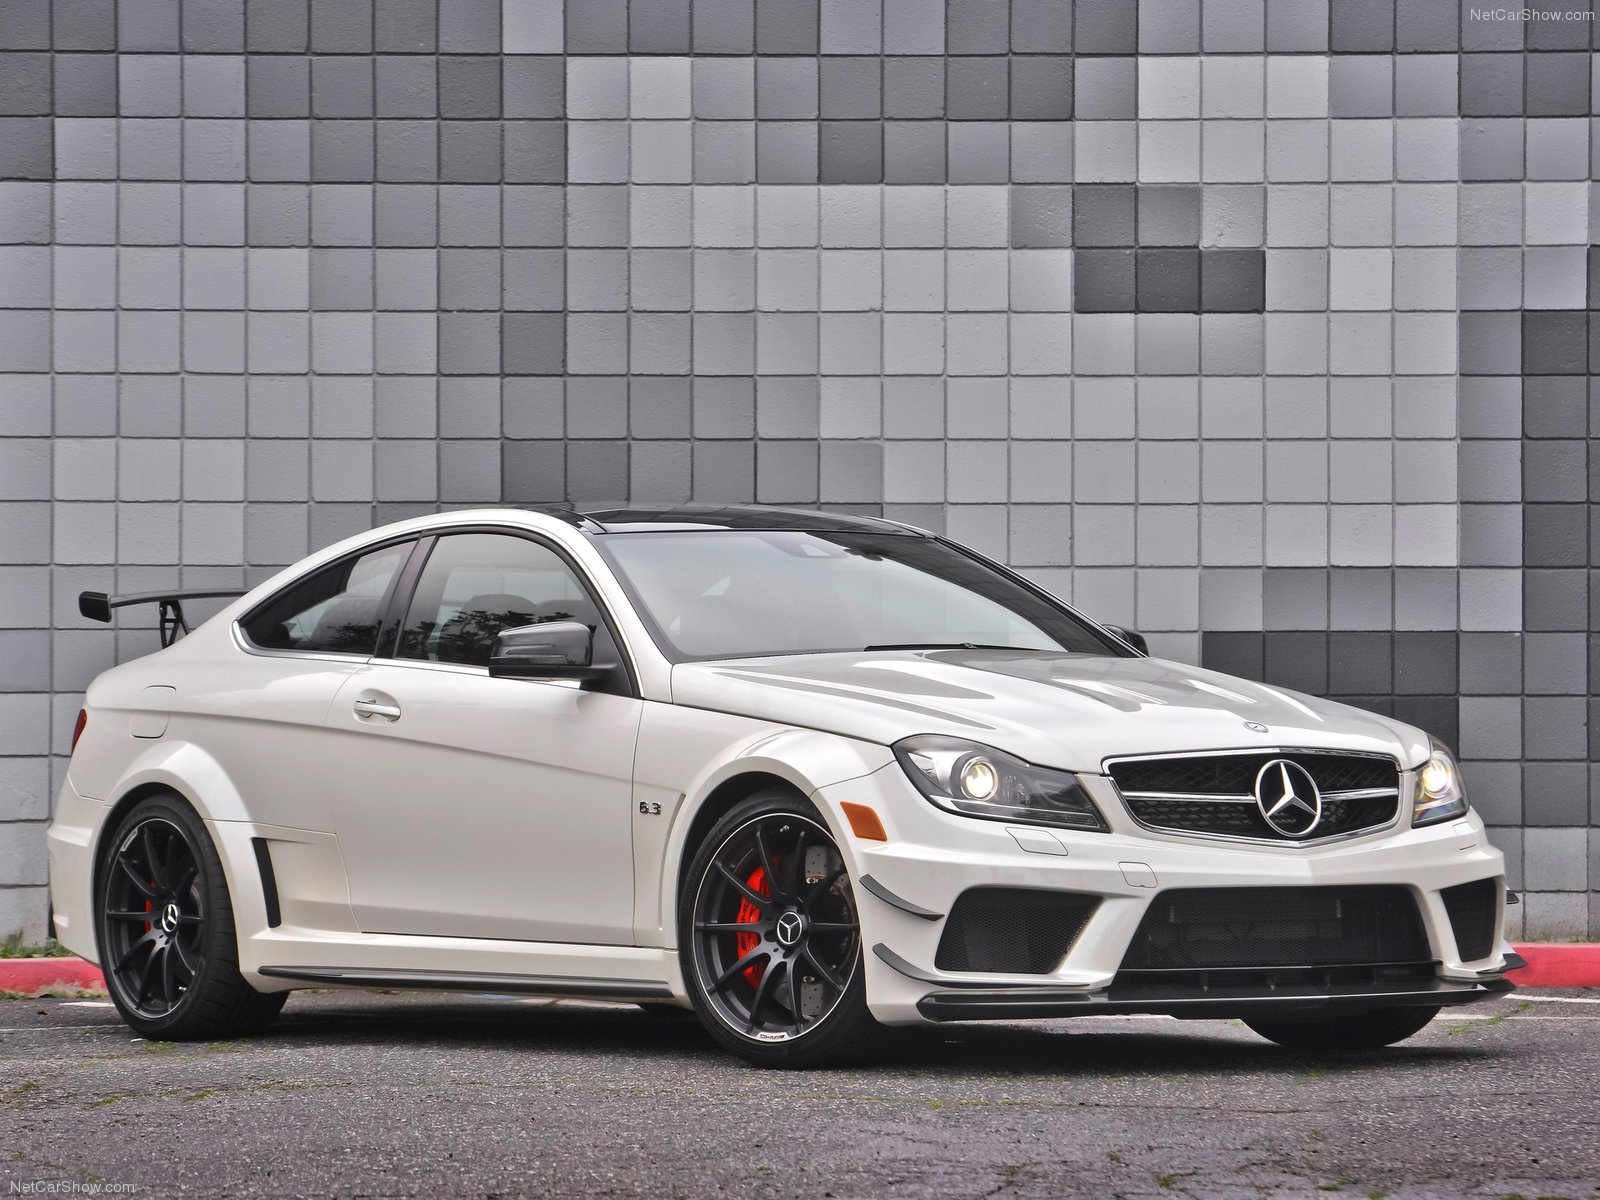 Mercedes-Benz-C63_AMG_Coupe_Black_Series_2012_1600x1200_wallpaper_05